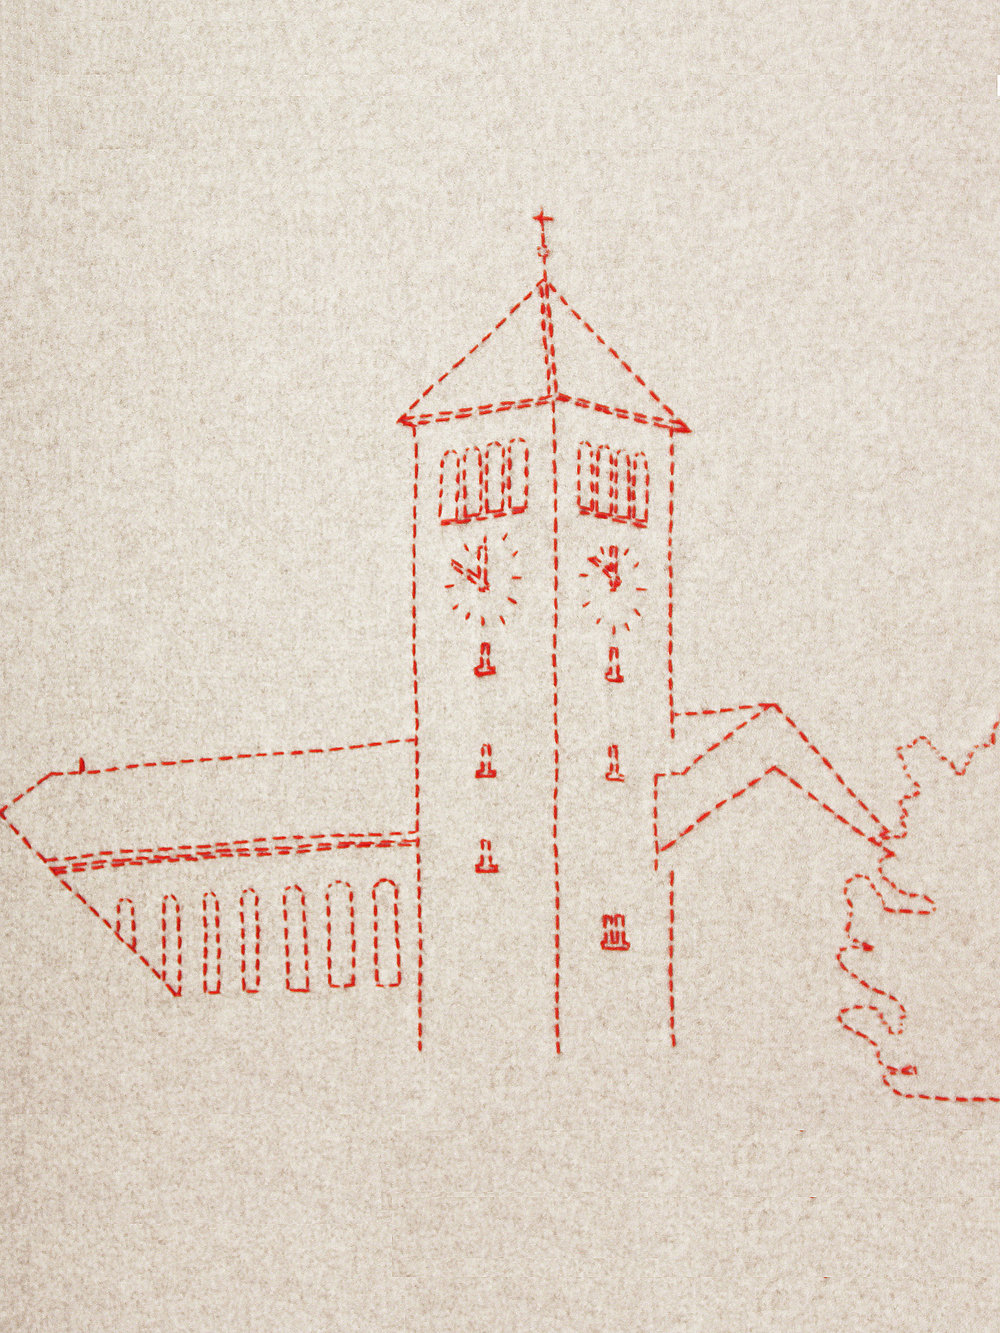 Detail aus dem bestickten Deckensegel, welches die Kirche in Rotkreuz zeigt  Detail from the embroidered ceiling banner, which shows the church in Rotkreuz